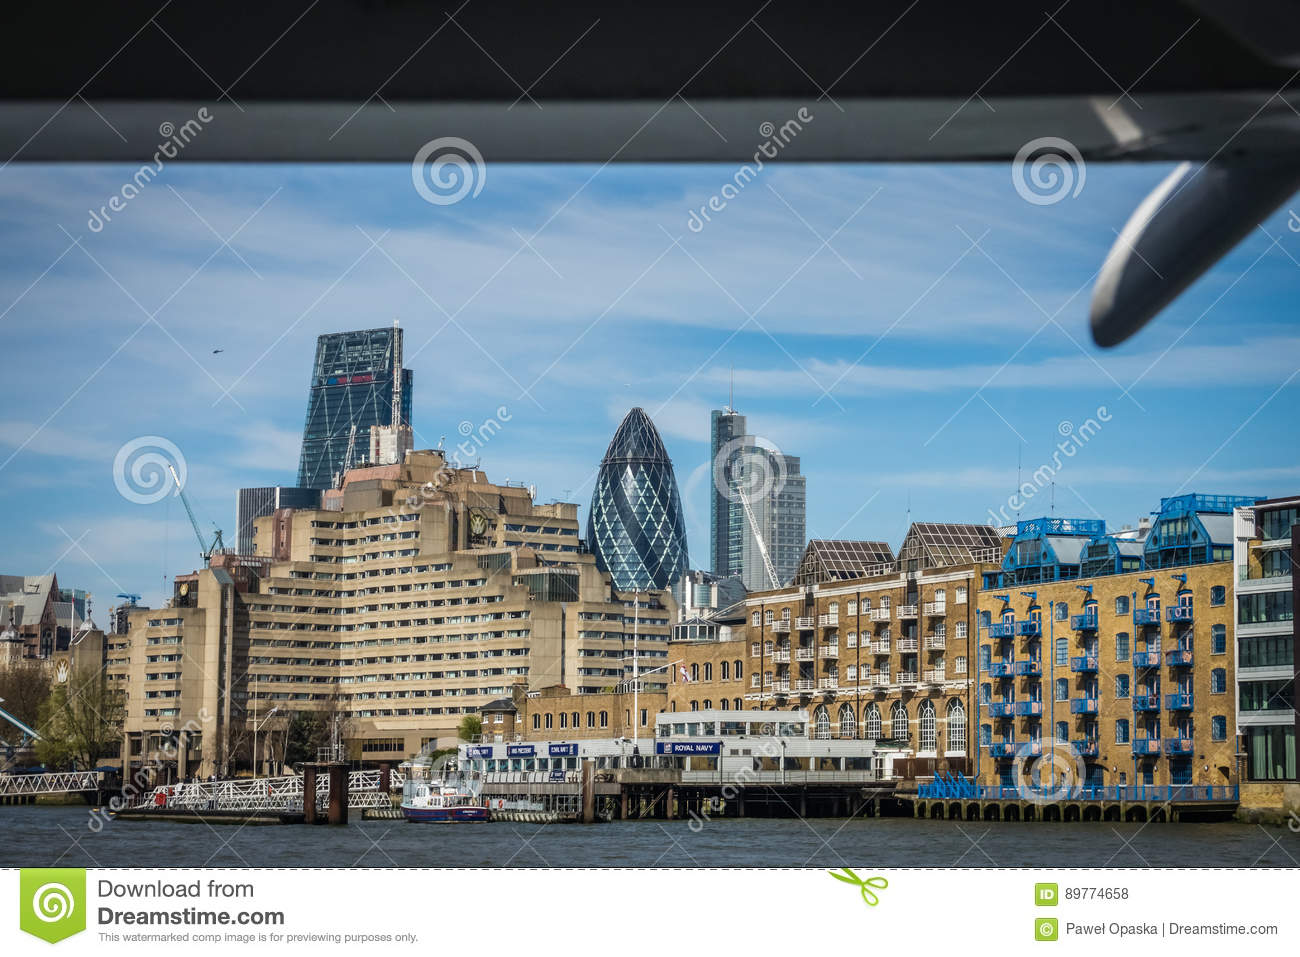 Apartmenst on the bank of river Thames